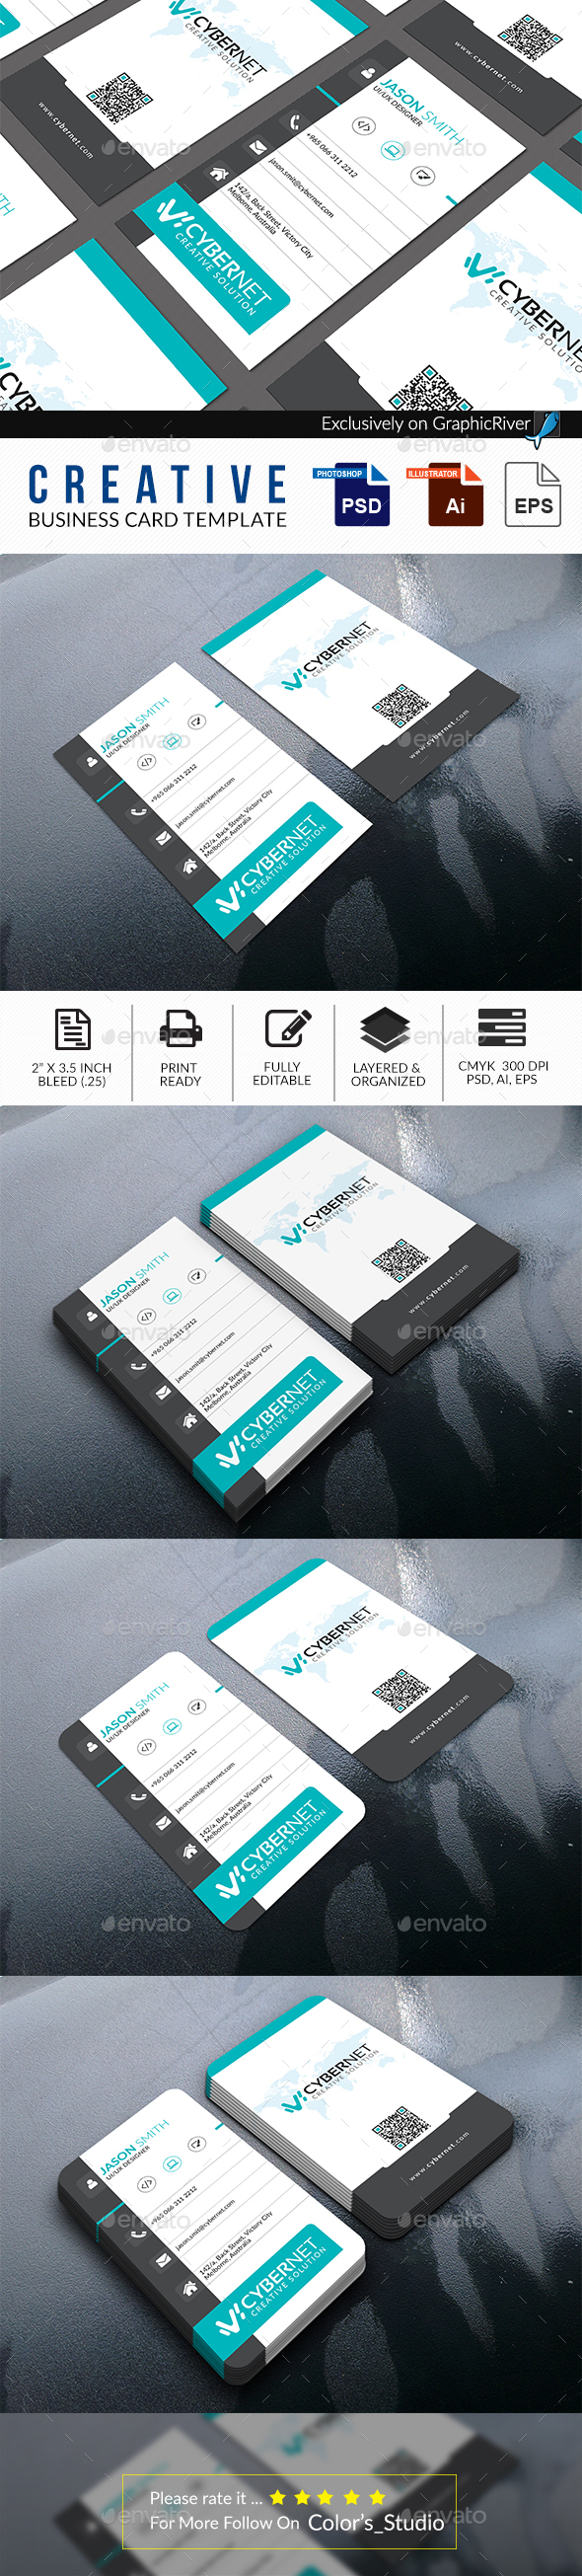 Professional Business Card Template - Business Cards Print Templates